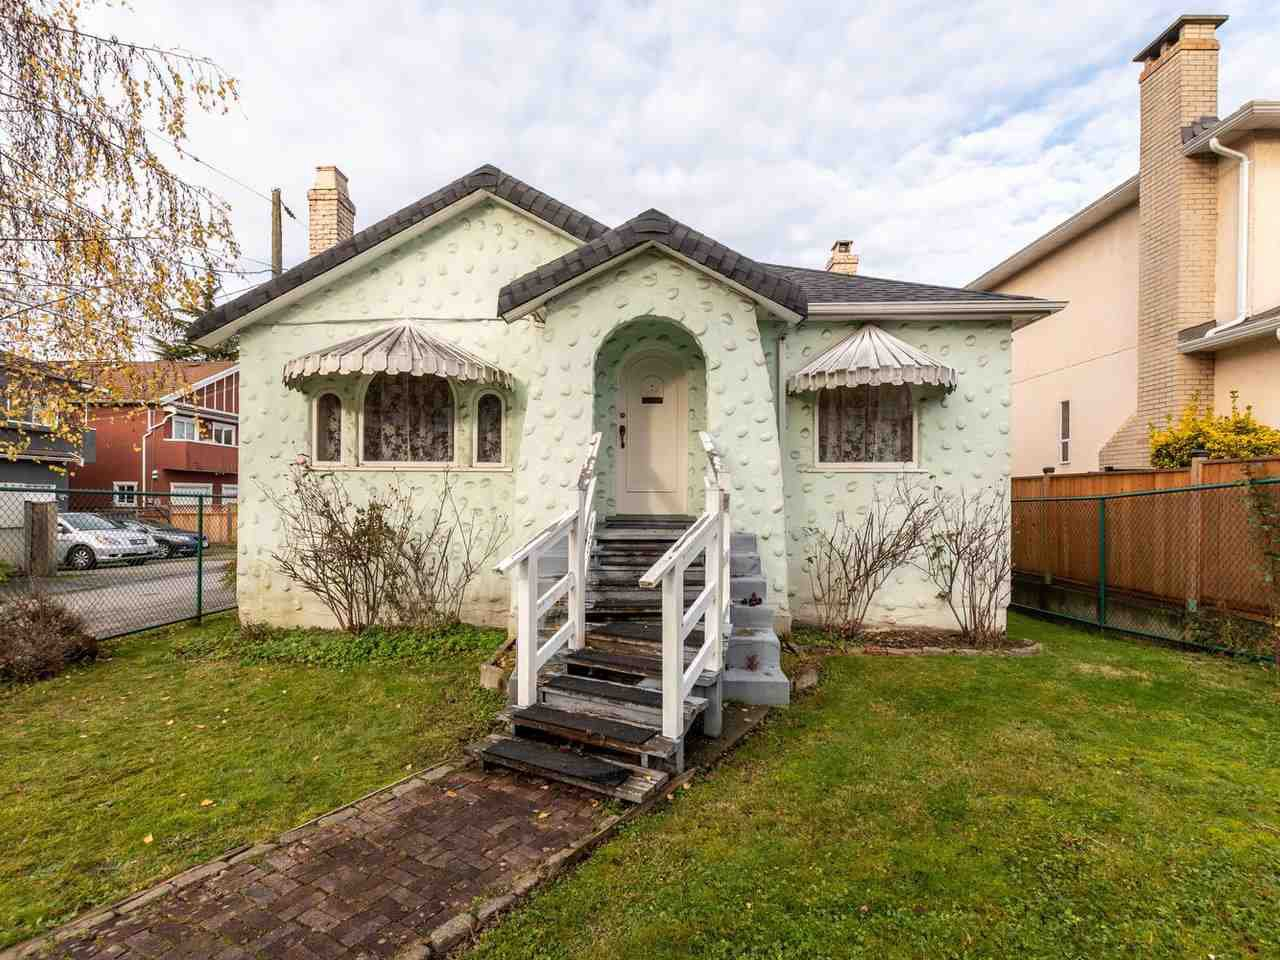 Main Photo: 215 E 36TH Avenue in Vancouver: Main House for sale (Vancouver East)  : MLS®# R2422049